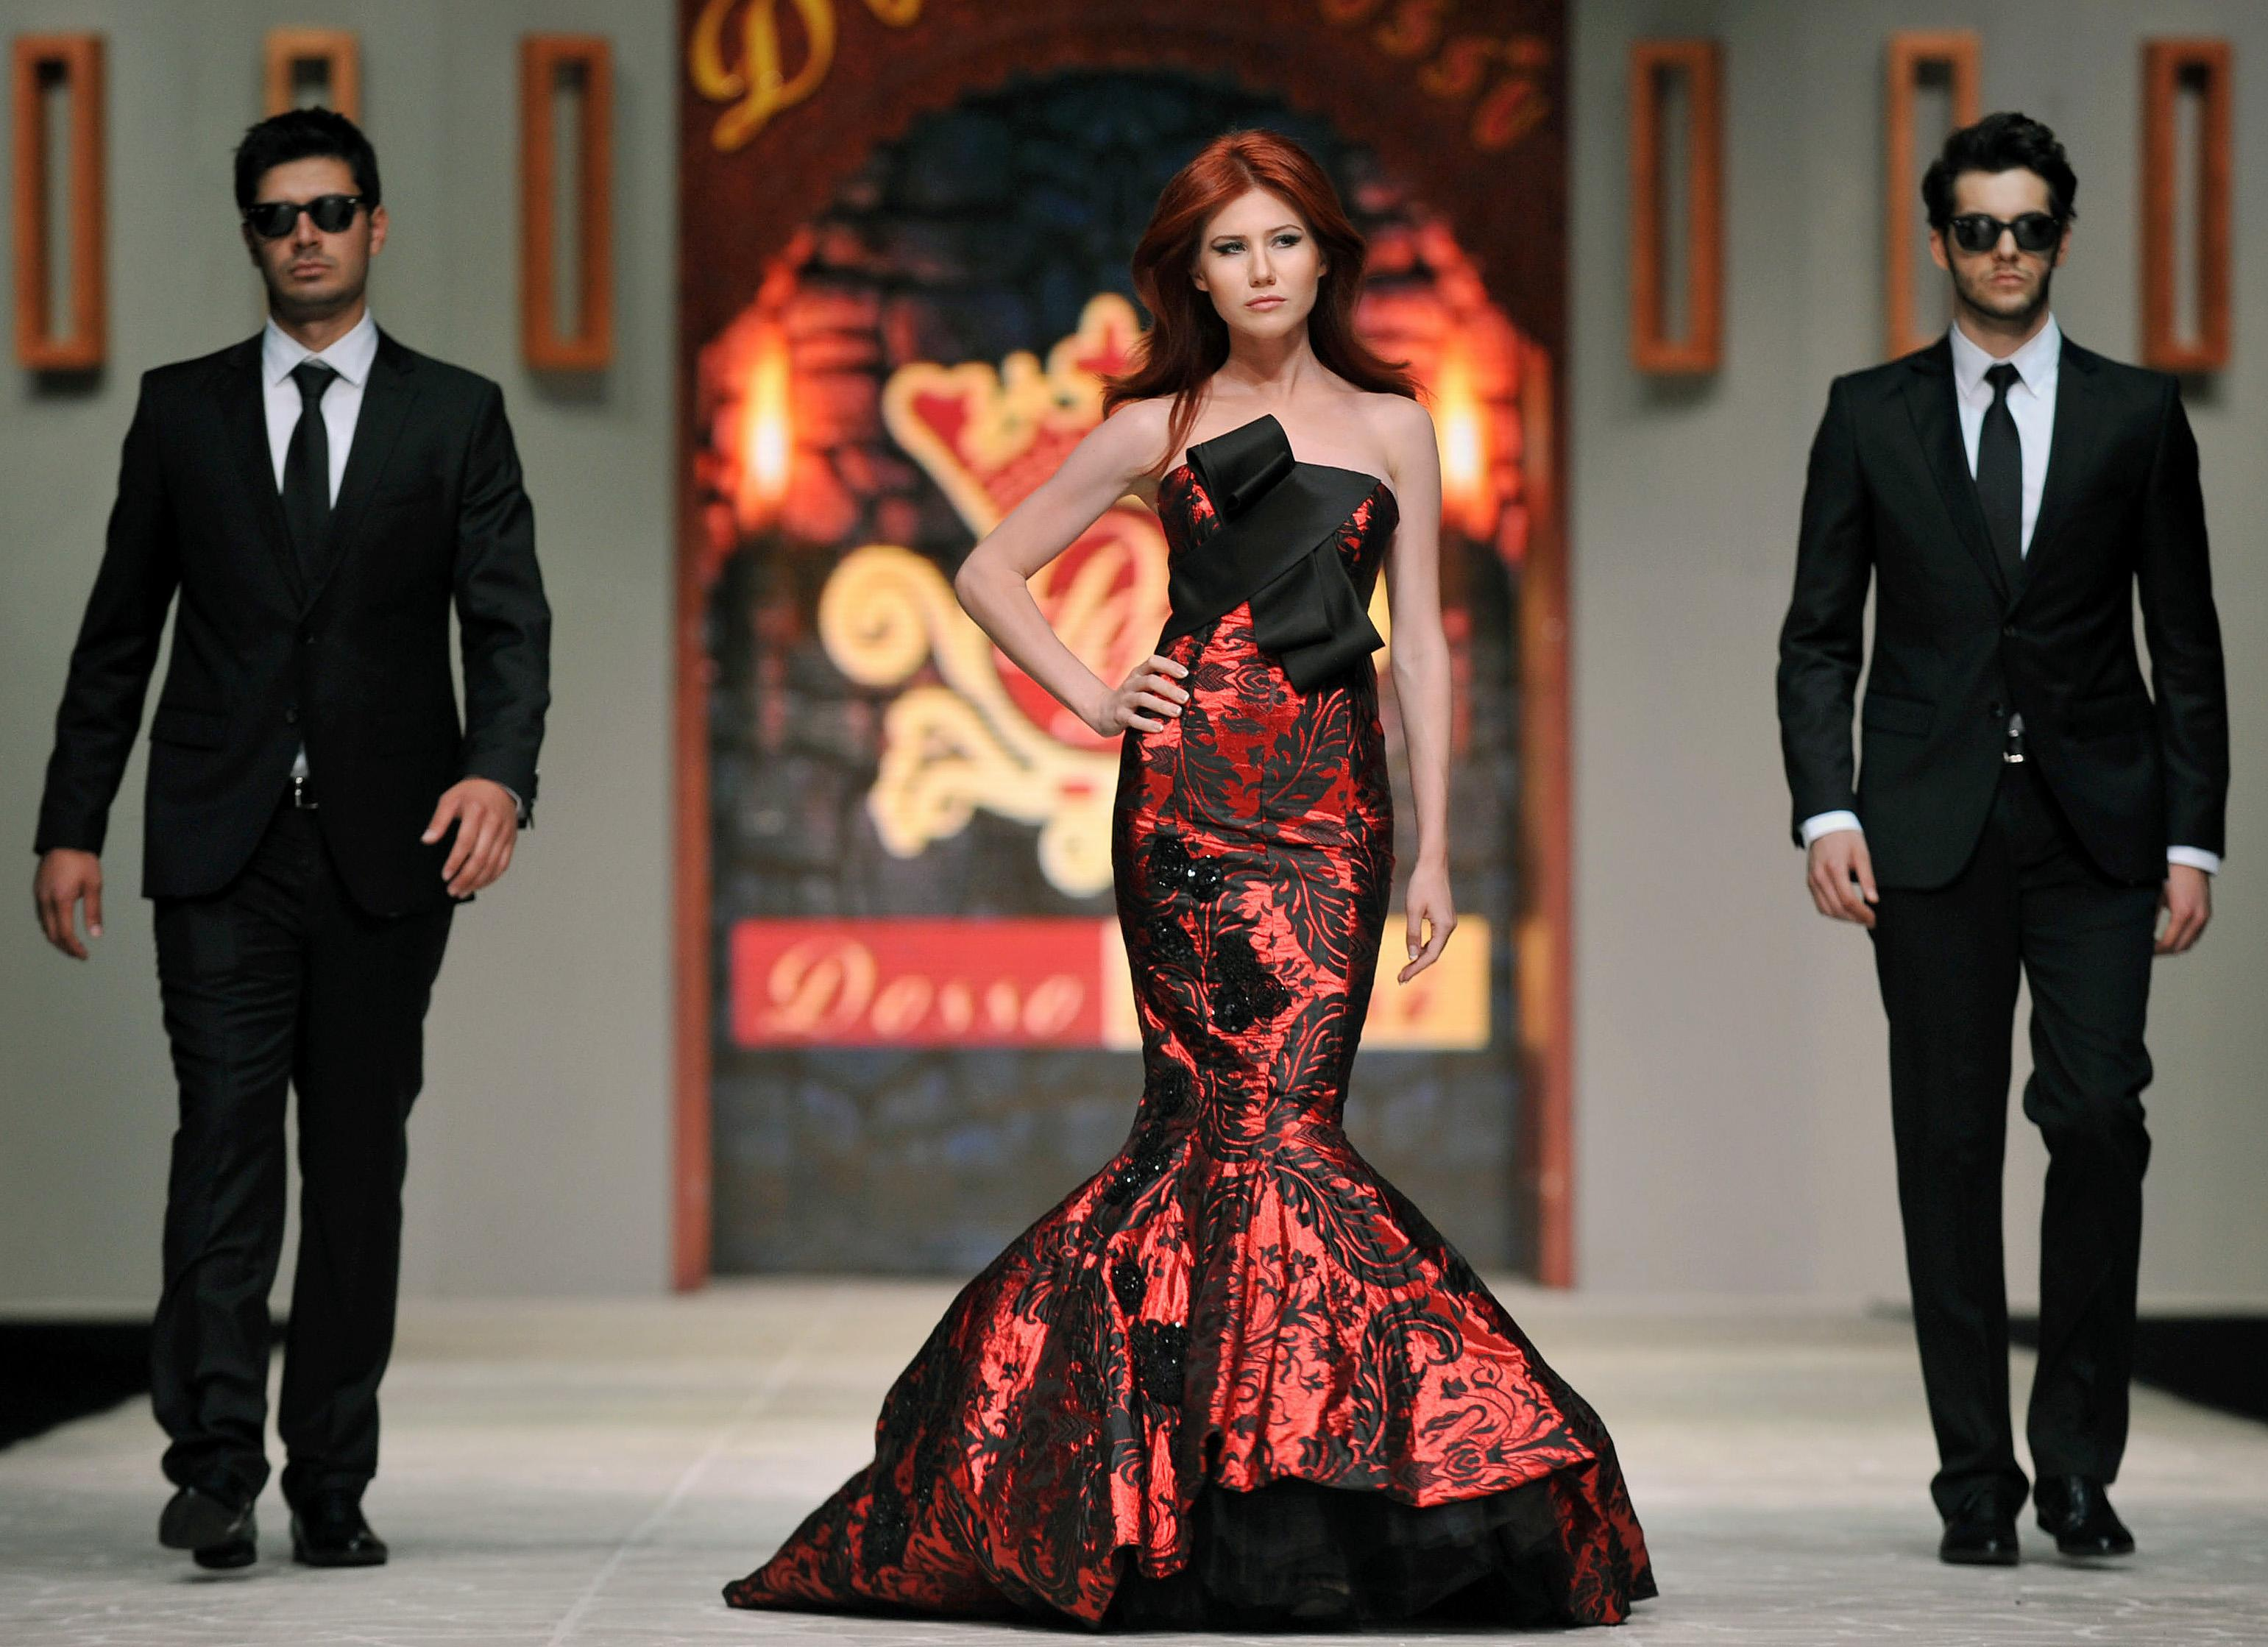 FILE - In this June 8, 2012, file photo, Russian ex-spy Anna Chapman, center, walks a Turkish catwalk flanked by two men posing as secret service agents at a fashion show in Antalya, Turkey. The embarrassing arrest of a suspected CIA officer in Moscow is the latest reminder that, even after the Cold War, the U.S. and Russia are engaged in an espionage battle with secret tactics, spying devices and training that sometimes isn't enough to avoid being caught. In a case that made headlines across the world, the FBI in 2010 wrapped up a ring of sleeper agents it had been following for years in the United States. Eventually the sleeper agents, including Chapman, were returned in a swap. (AP Photo)